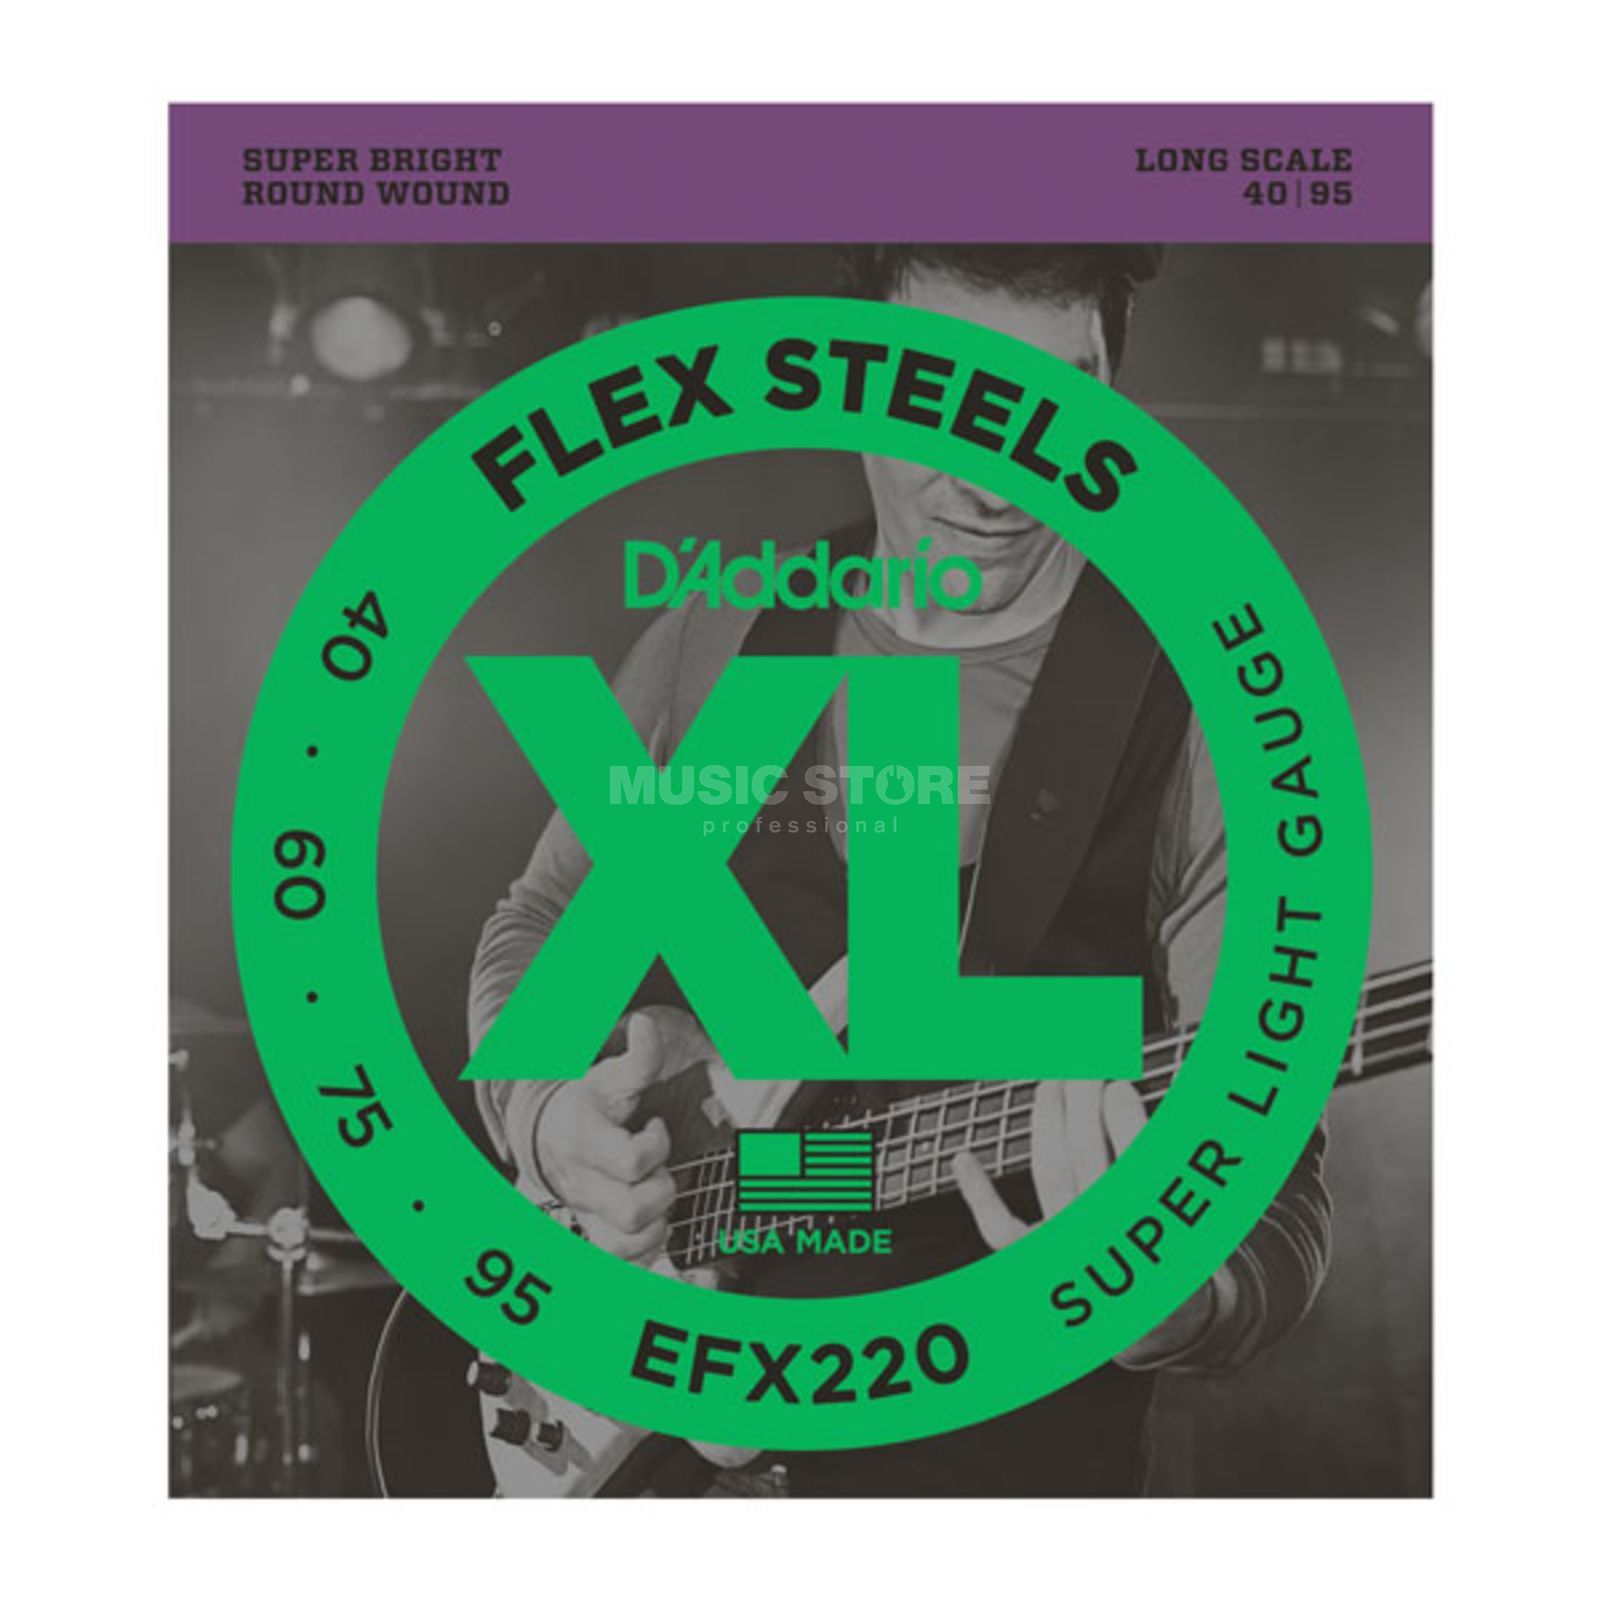 D'Addario Bass Strings Set of 4 EFX FlexSteels 40-095 40-60-075-95, EFX220 Immagine prodotto